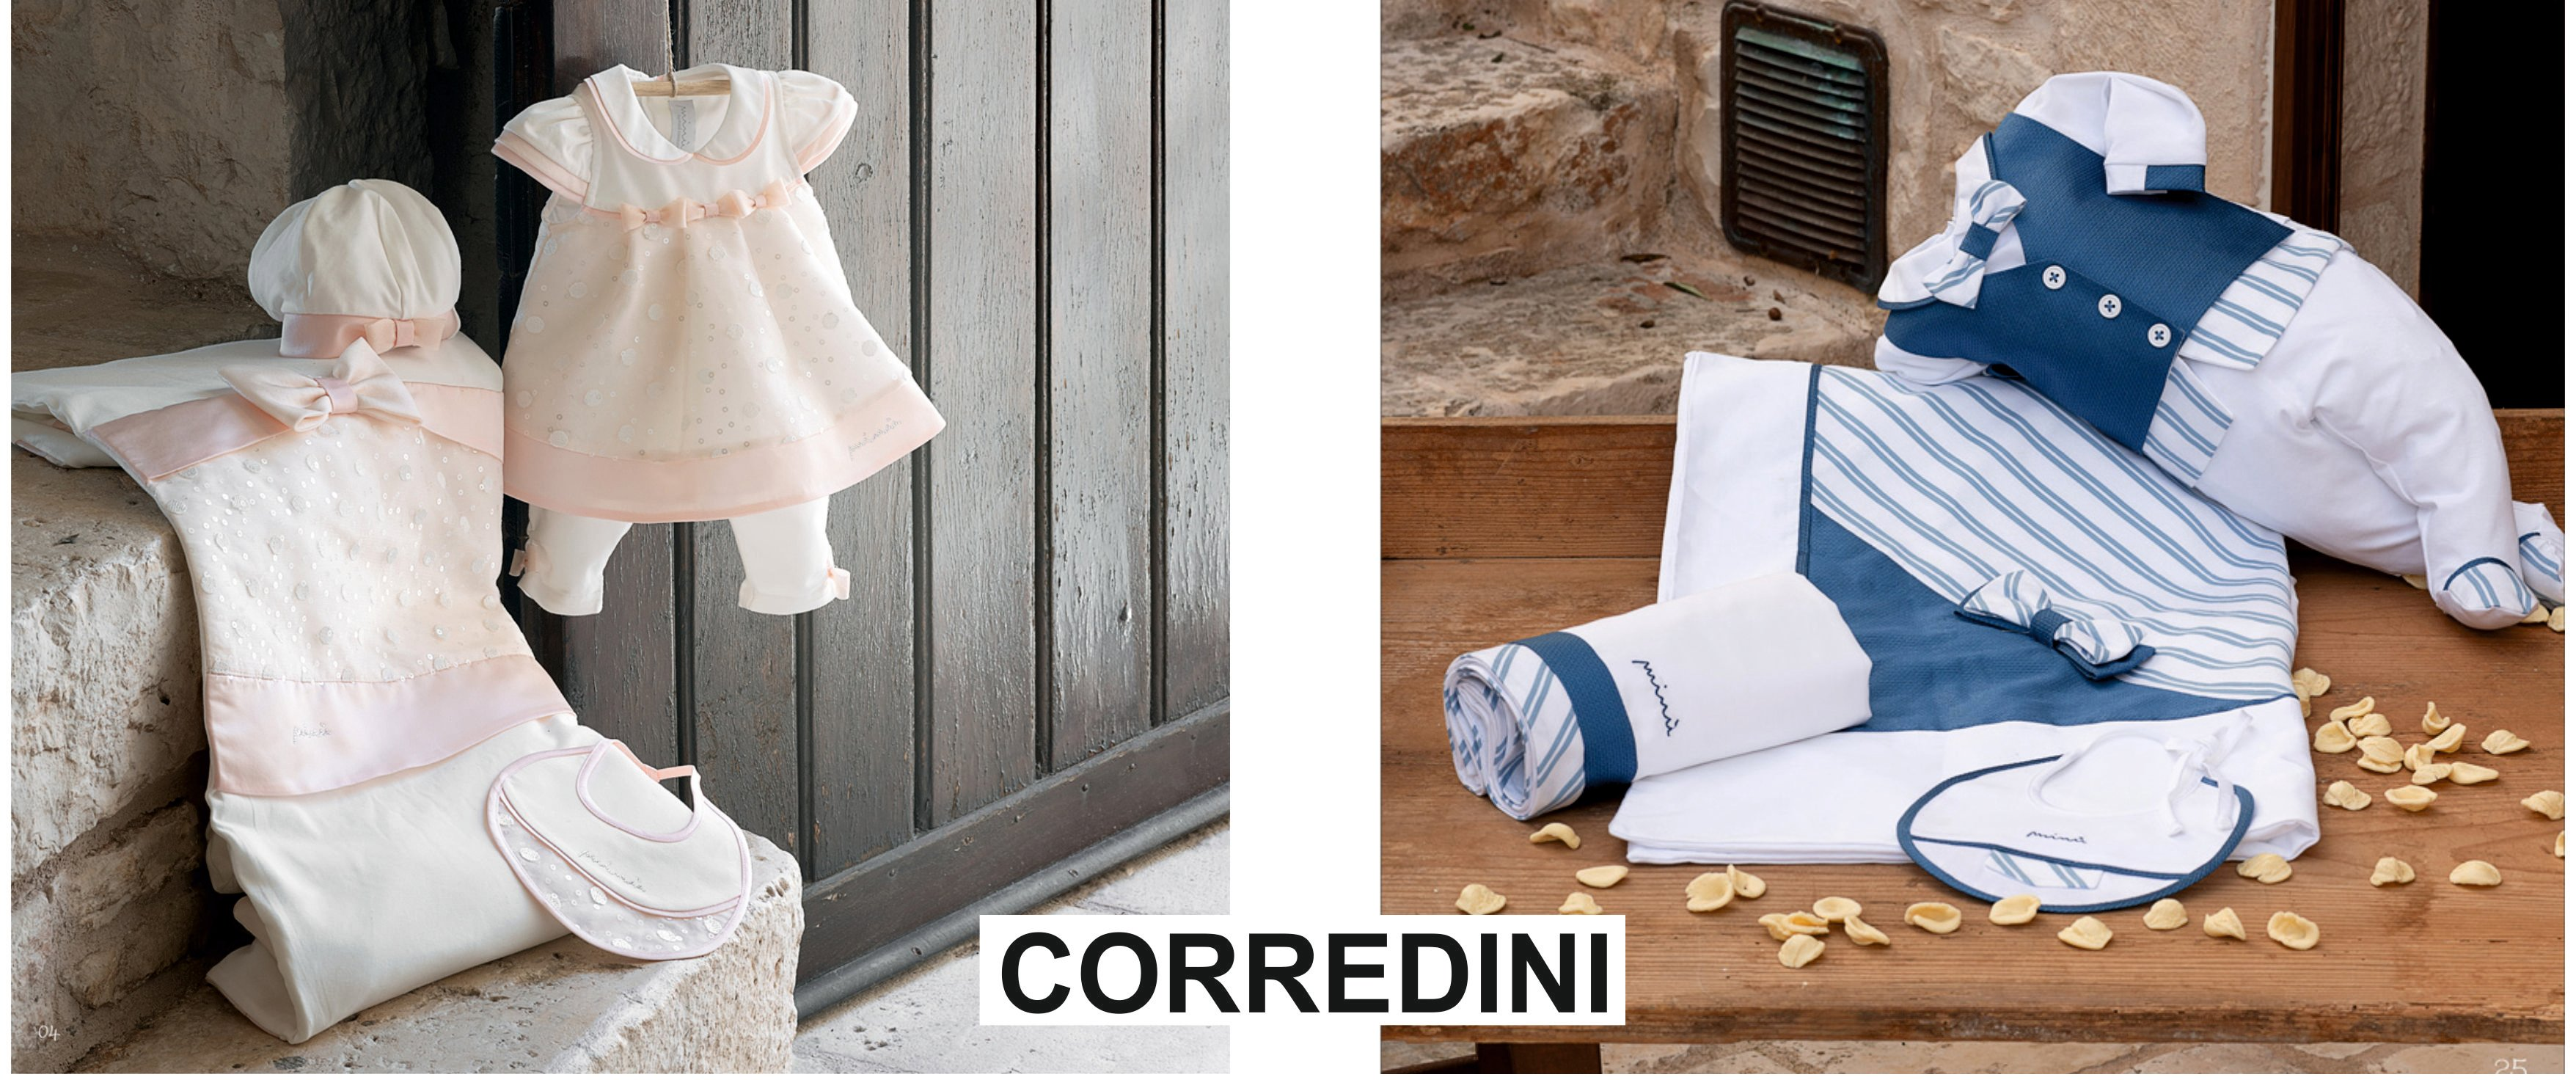 home - slider - corredini